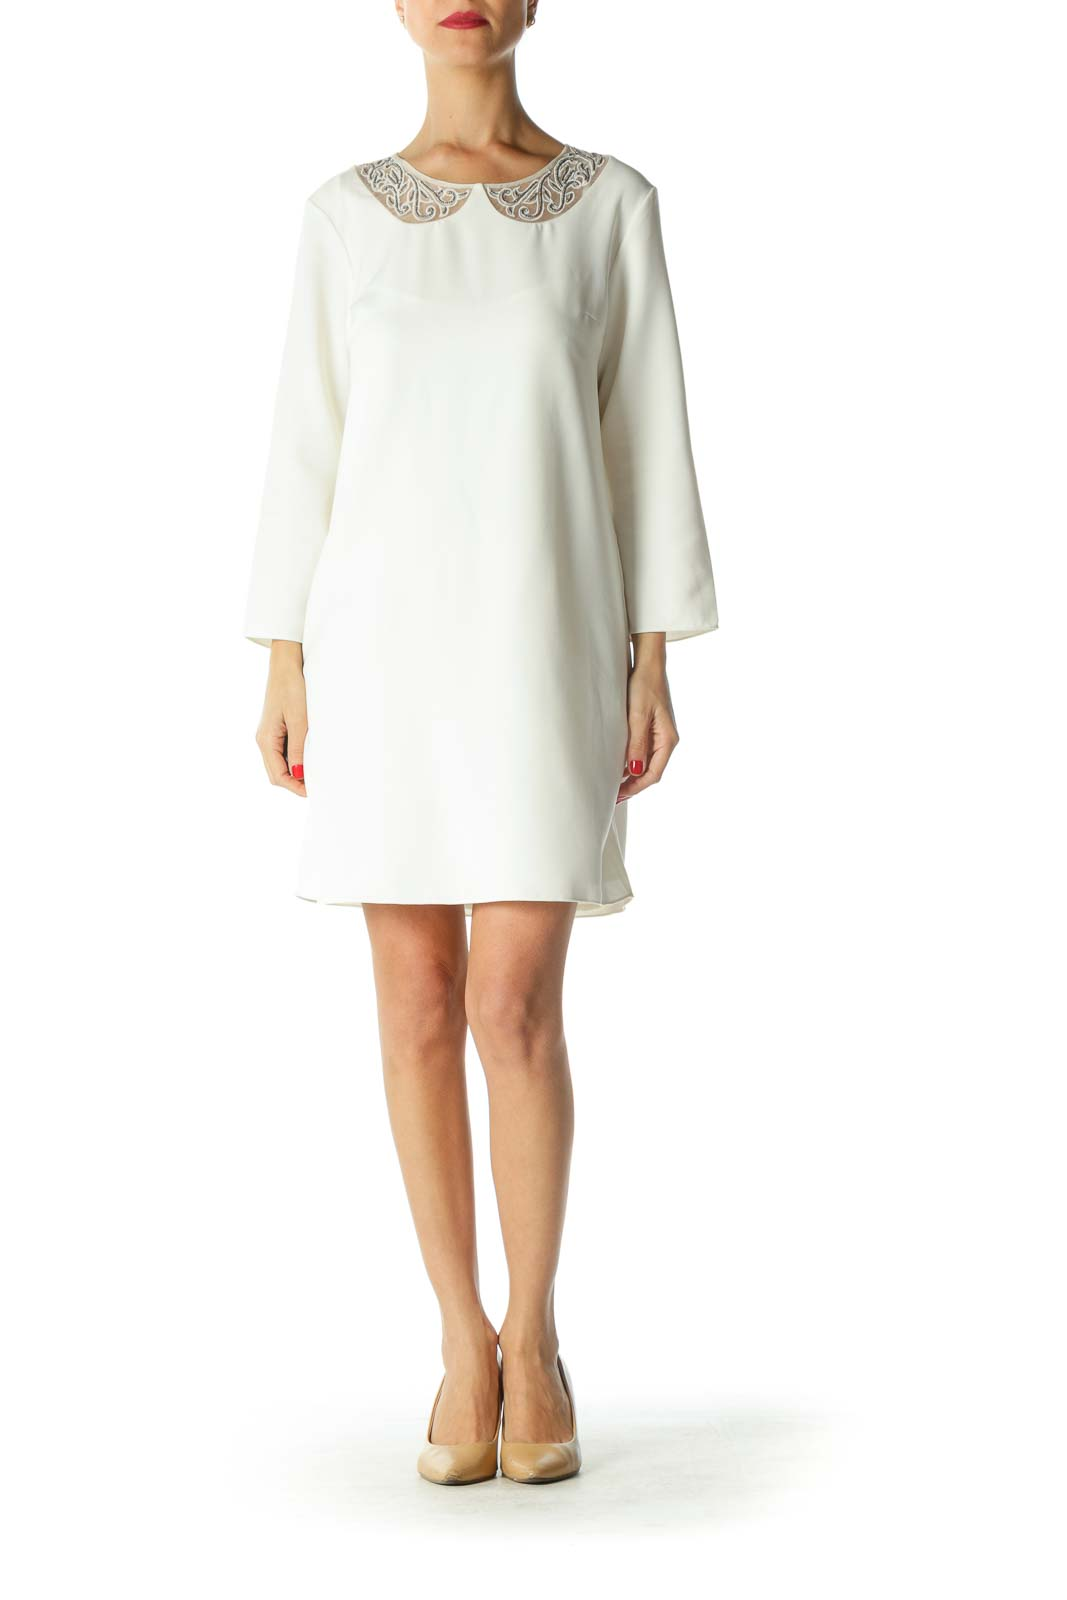 White Beaded Neckline 3/4 Sleeve Dress